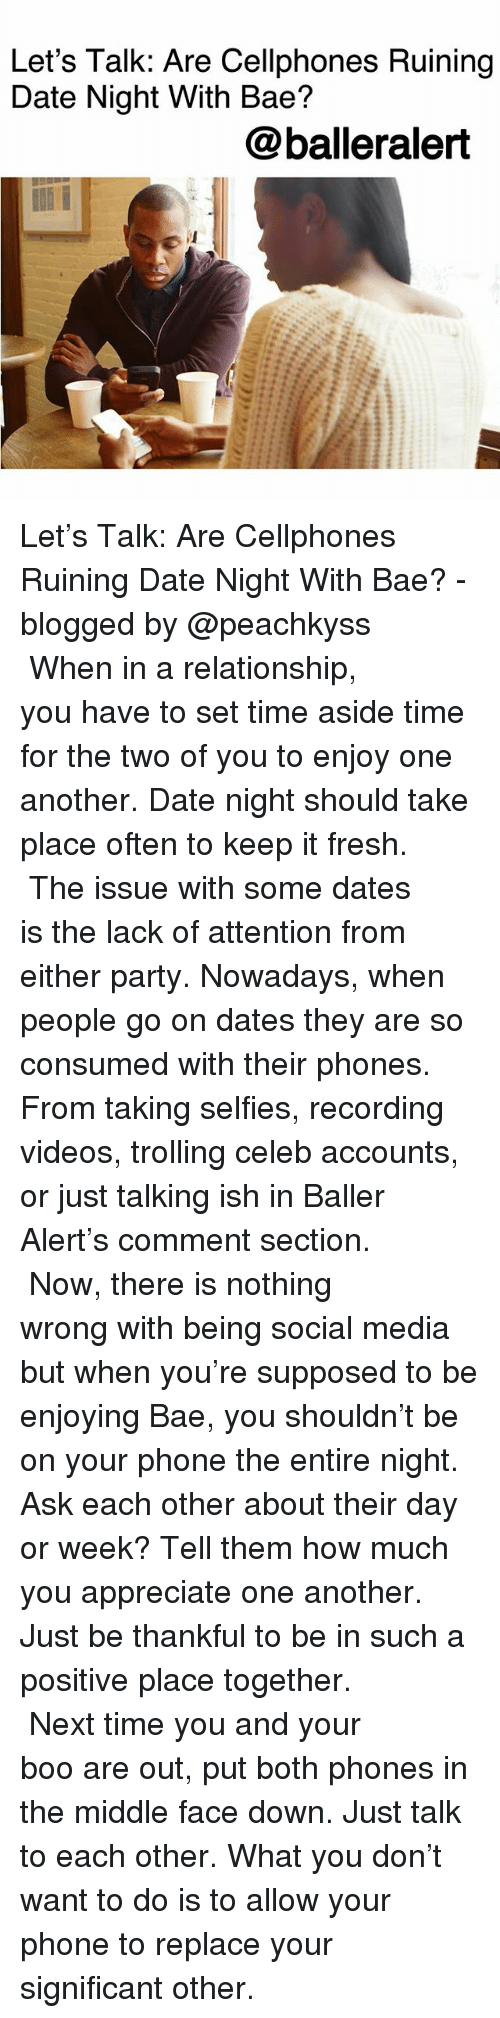 baller alert: Let's Talk: Are Cellphones Ruining  Date Night With Bae?  @balleralert Let's Talk: Are Cellphones Ruining Date Night With Bae? -blogged by @peachkyss ⠀⠀⠀⠀⠀⠀⠀ ⠀⠀⠀⠀⠀⠀⠀ When in a relationship, you have to set time aside time for the two of you to enjoy one another. Date night should take place often to keep it fresh. ⠀⠀⠀⠀⠀⠀⠀ ⠀⠀⠀⠀⠀⠀⠀ The issue with some dates is the lack of attention from either party. Nowadays, when people go on dates they are so consumed with their phones. From taking selfies, recording videos, trolling celeb accounts, or just talking ish in Baller Alert's comment section. ⠀⠀⠀⠀⠀⠀⠀ ⠀⠀⠀⠀⠀⠀⠀ Now, there is nothing wrong with being social media but when you're supposed to be enjoying Bae, you shouldn't be on your phone the entire night. Ask each other about their day or week? Tell them how much you appreciate one another. Just be thankful to be in such a positive place together. ⠀⠀⠀⠀⠀⠀⠀ ⠀⠀⠀⠀⠀⠀⠀ Next time you and your boo are out, put both phones in the middle face down. Just talk to each other. What you don't want to do is to allow your phone to replace your significant other.